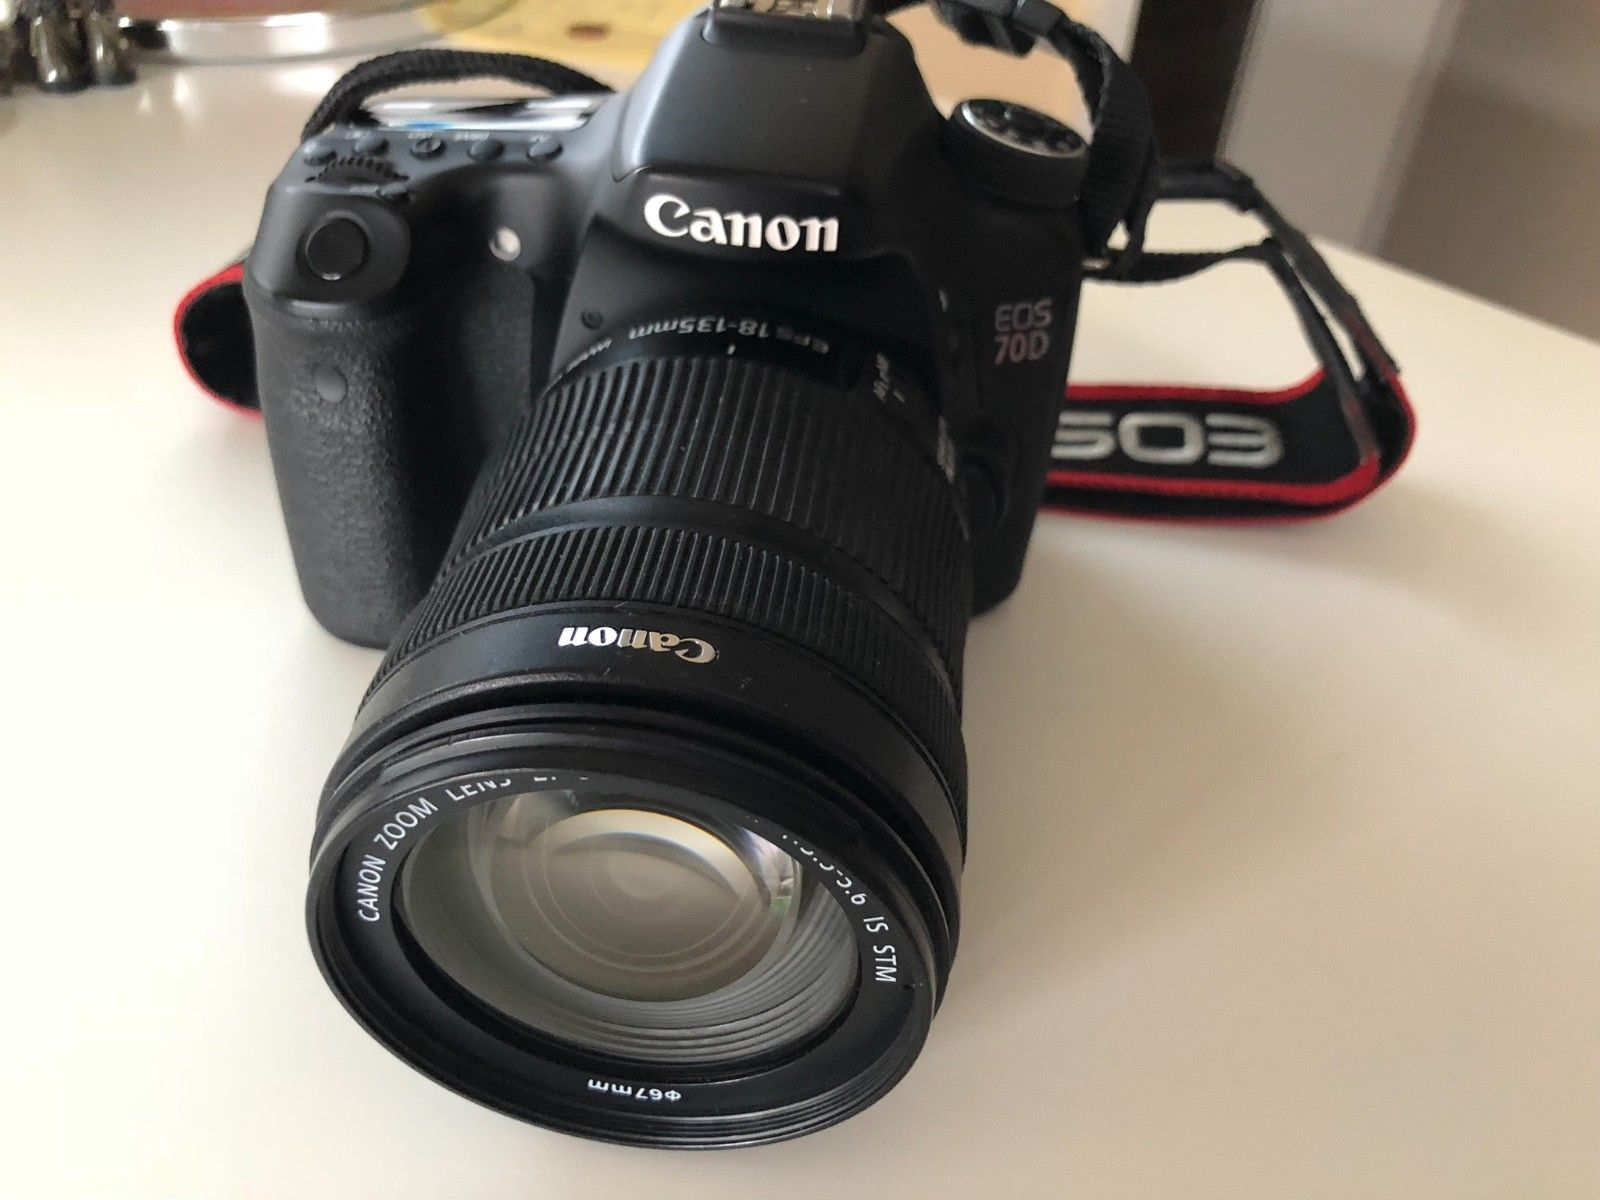 Canon EOS 70D  (Kit m/ EF-S 18-135mm f/3.5-5.6 IS STM) mit OVP